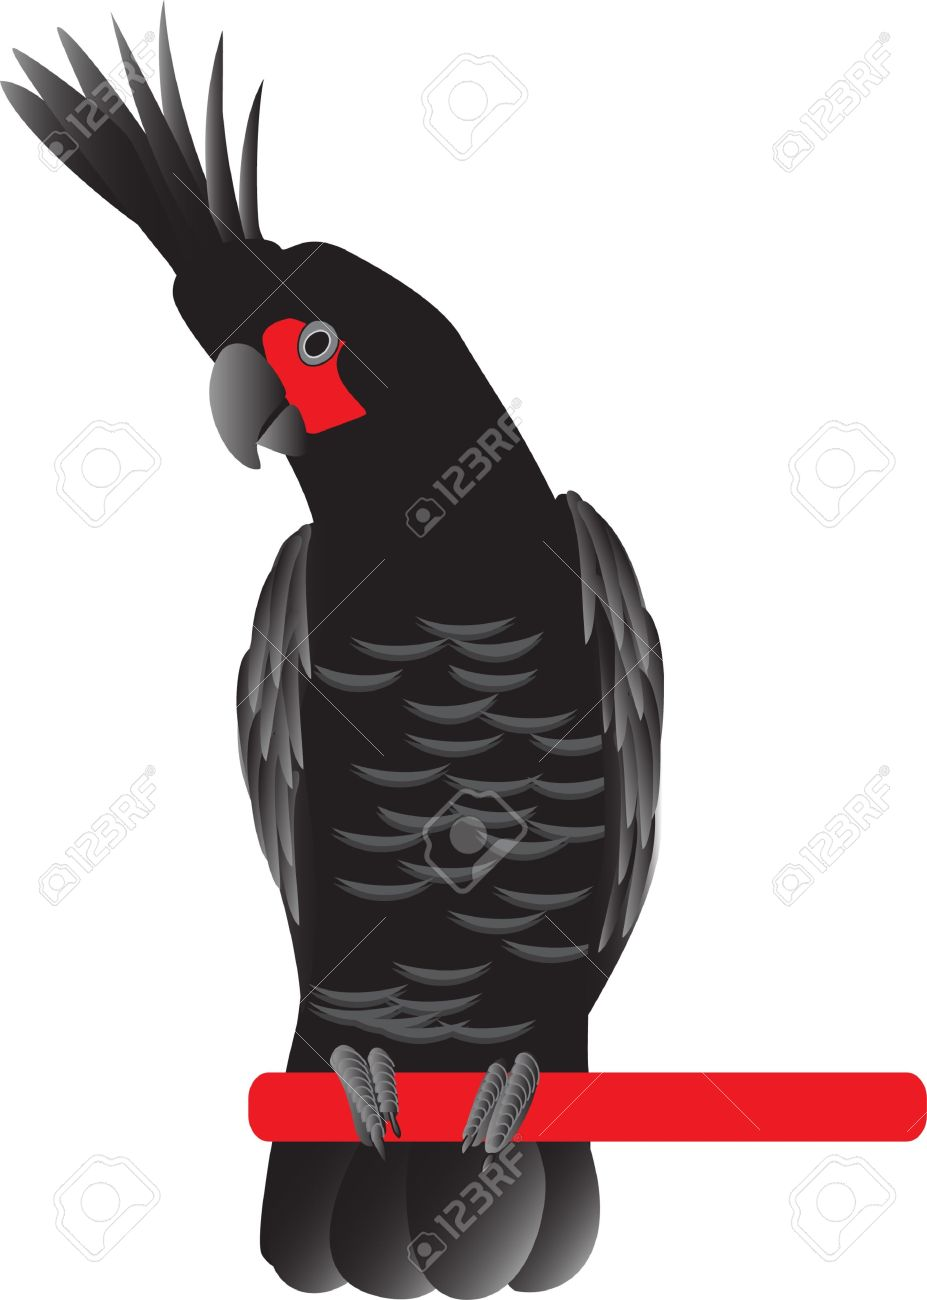 Palm Cockatoo clipart #20, Download drawings